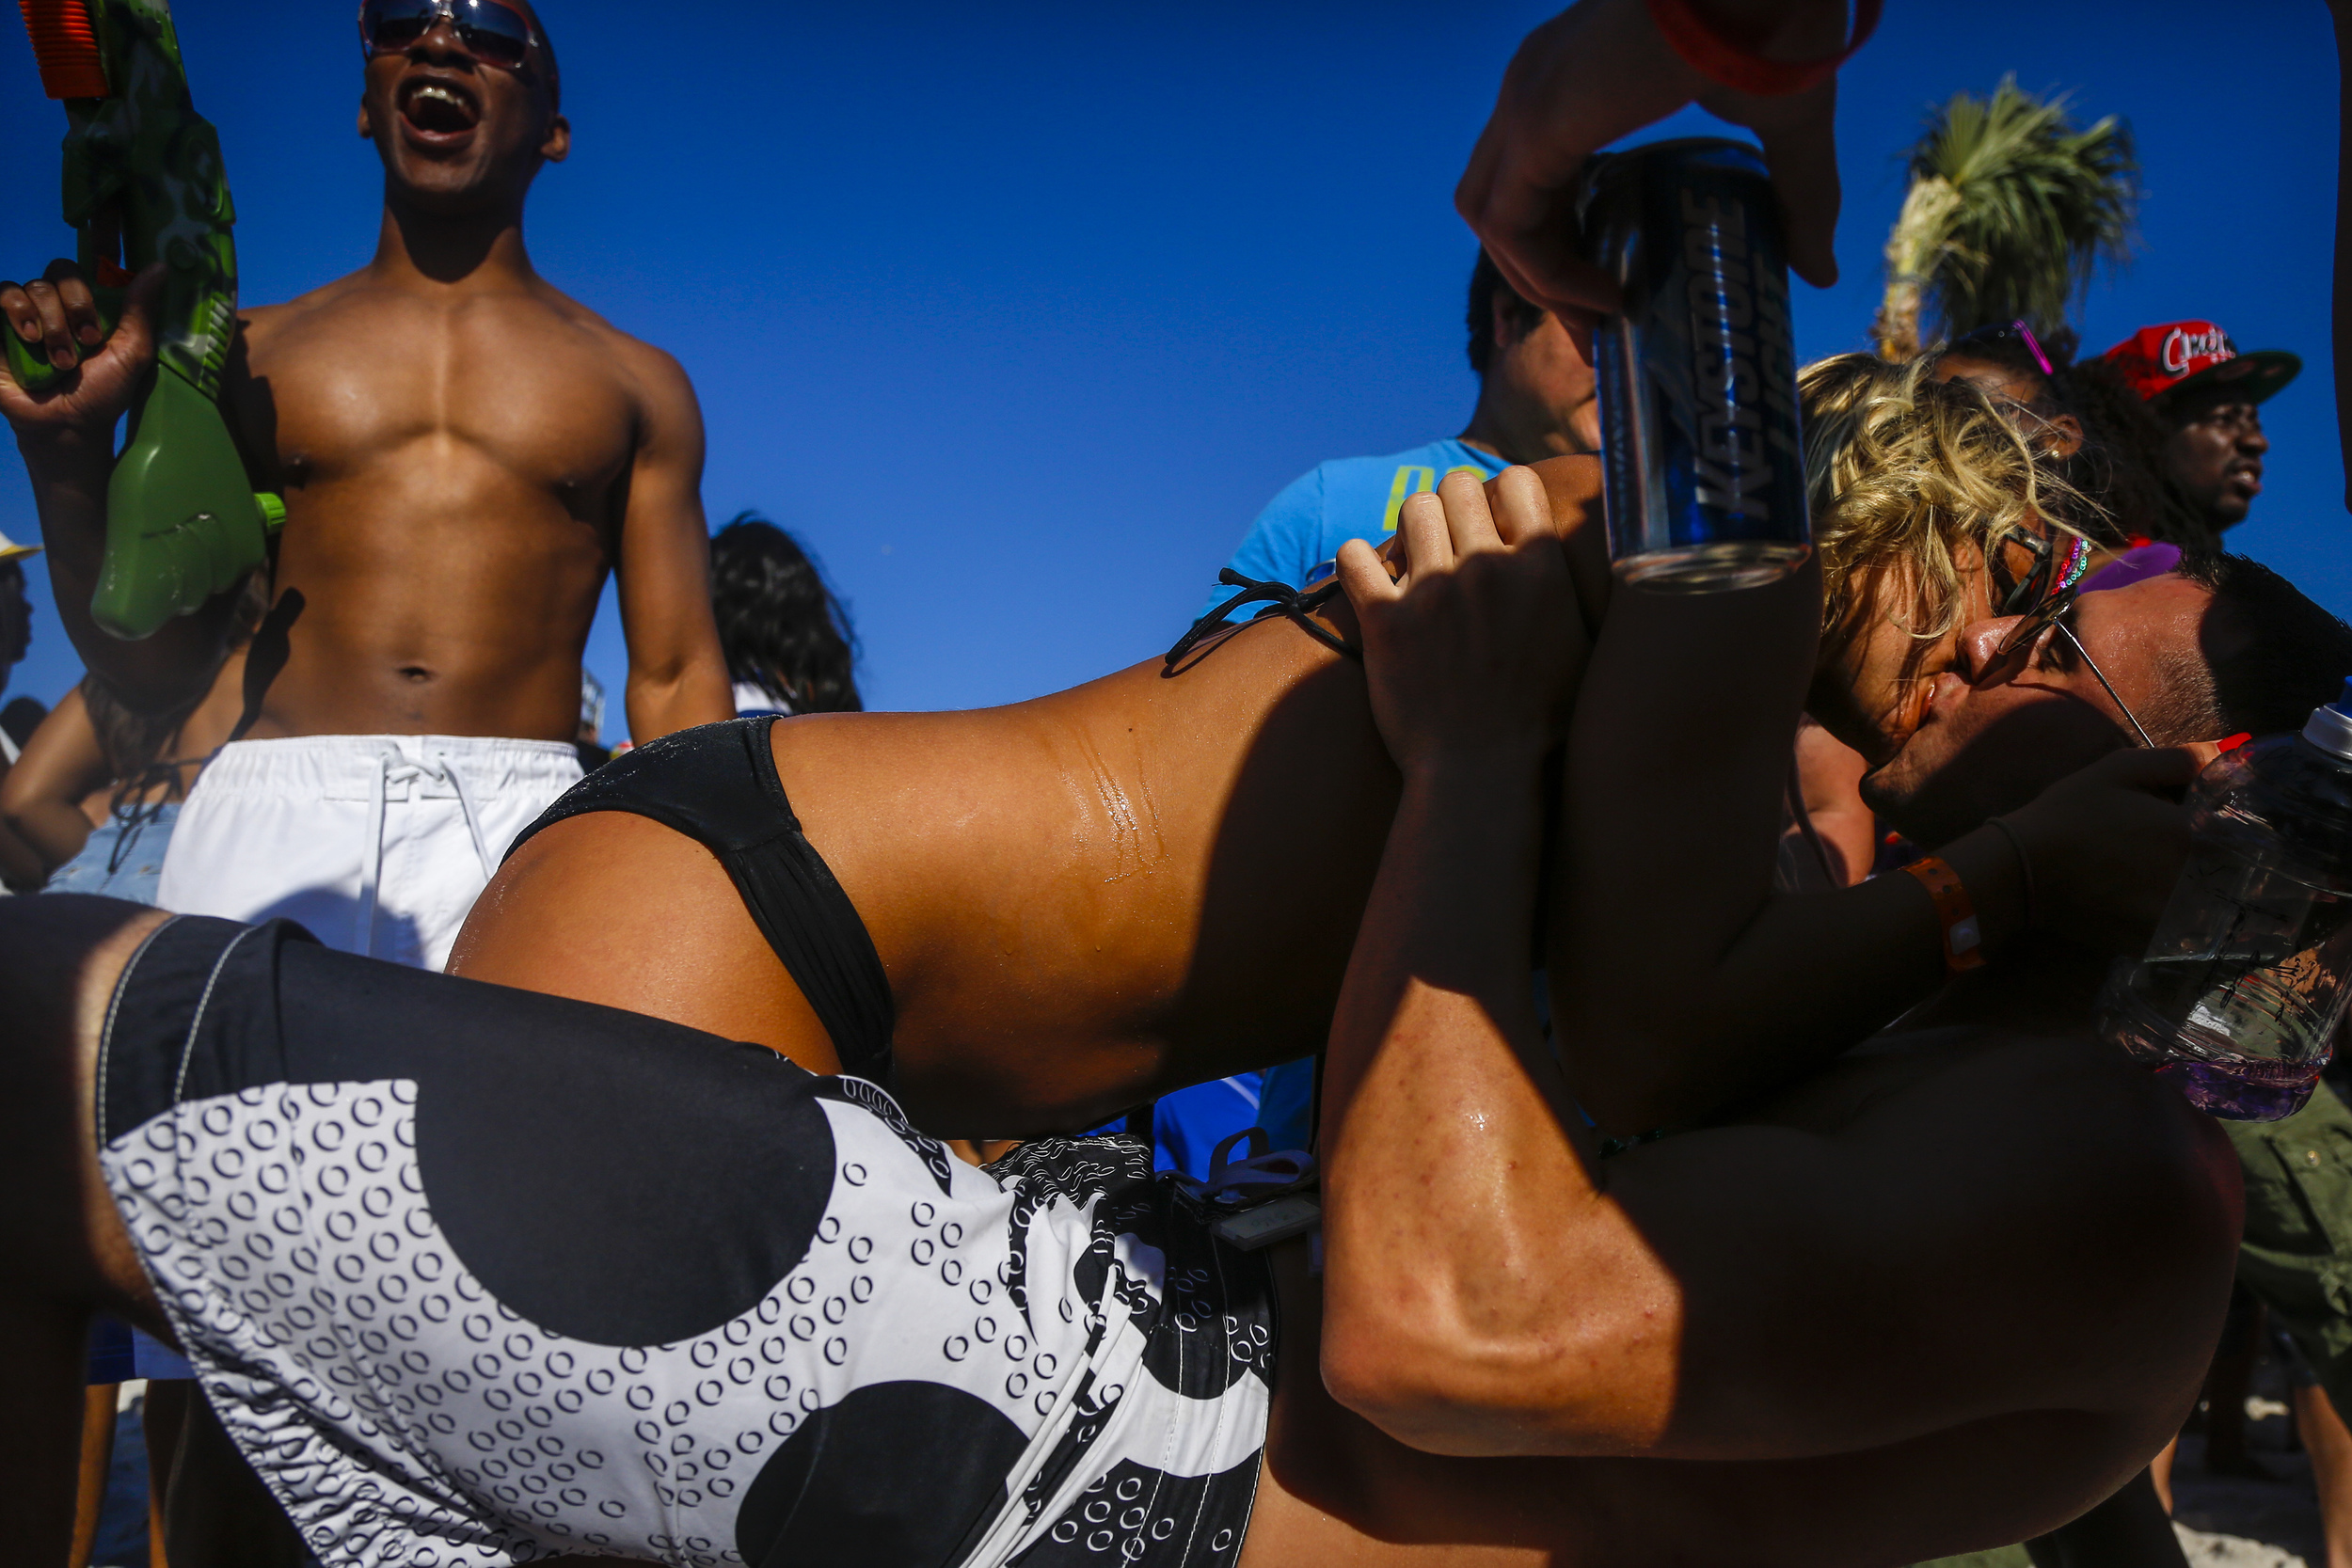 Spring breakers make out after a jello body shot as students from around the country congregate to party and have a good time in Panama City Beach, Florida.